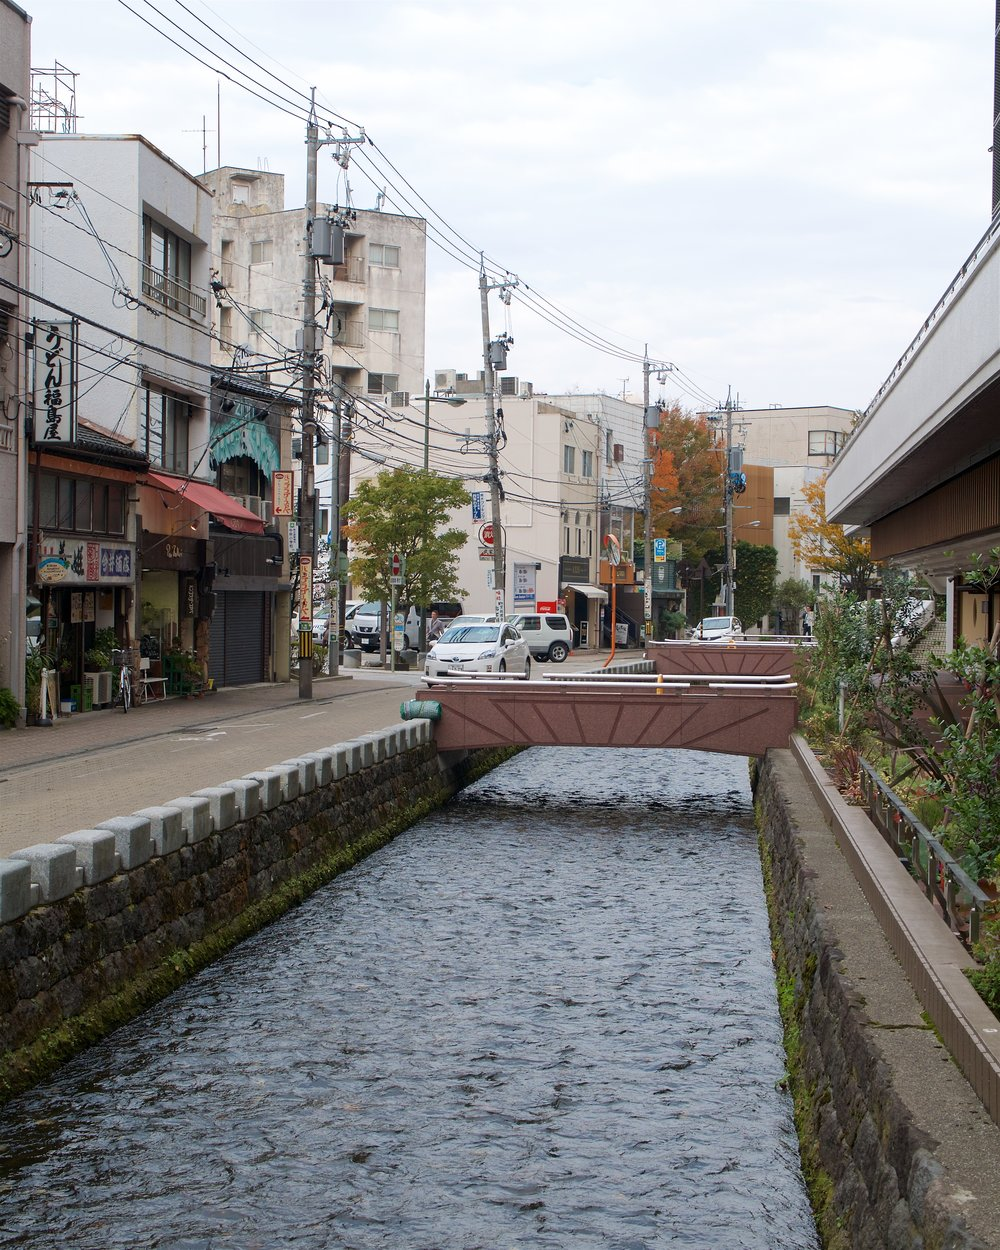 The samurai district had lots of canals